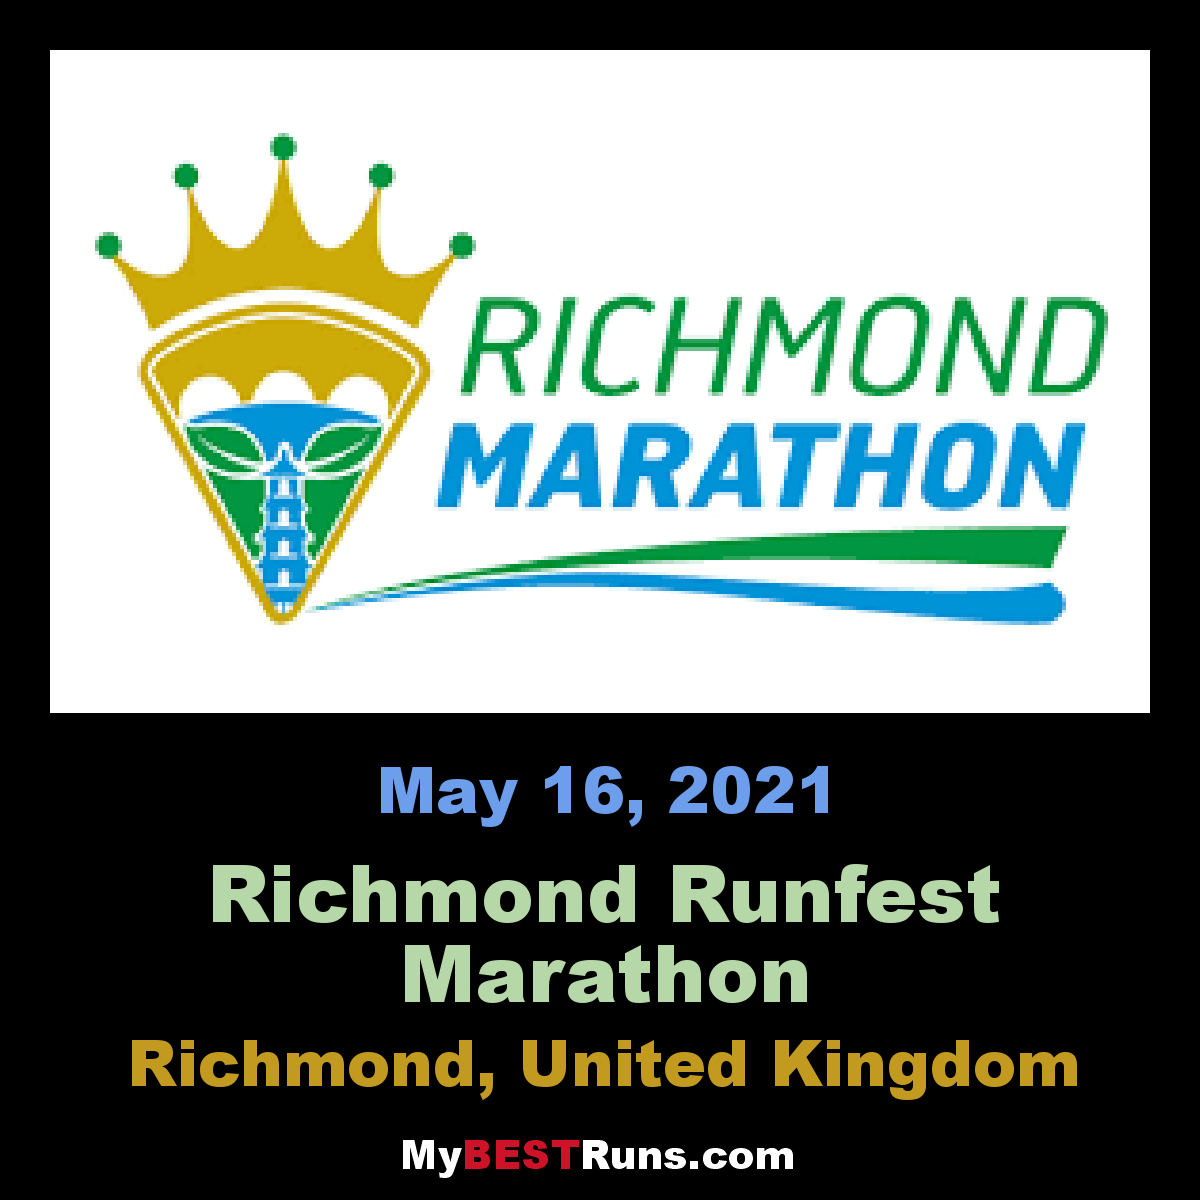 Richmond Runfest Marathon